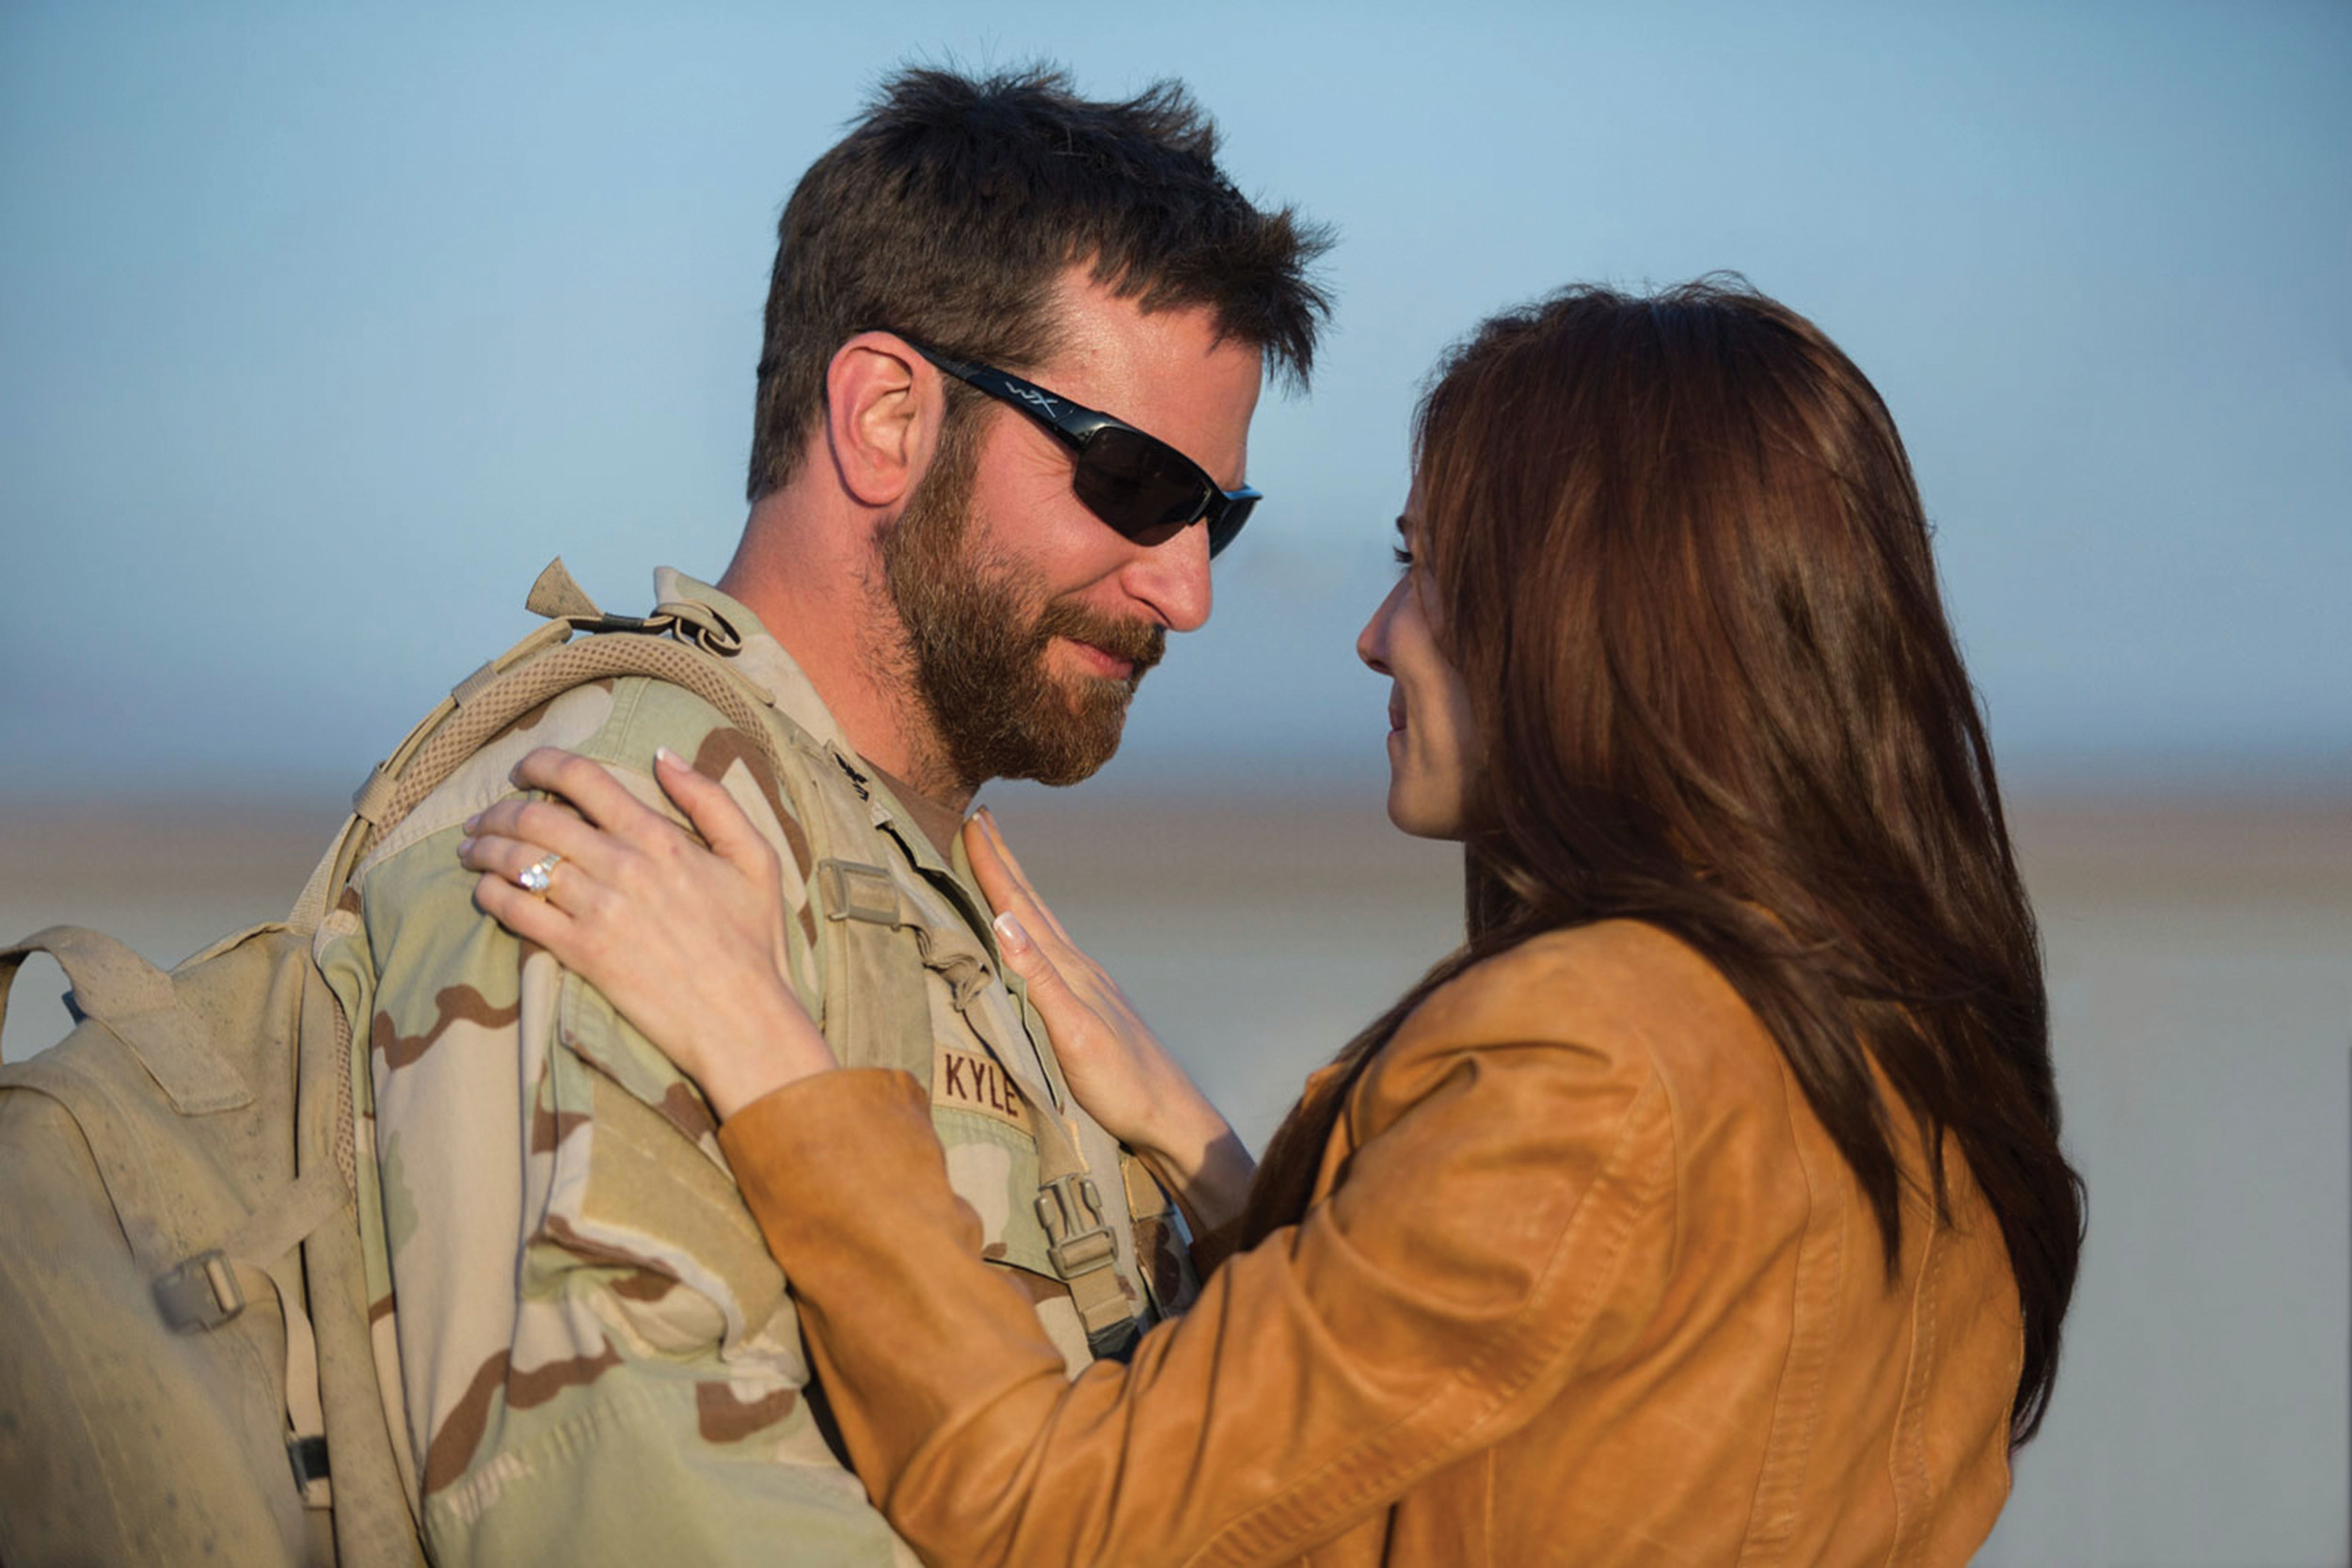 Chris Kyle (Bradley Cooper) and wife Taya (Sienna Miller), his steadfast if not always happy home front support system.